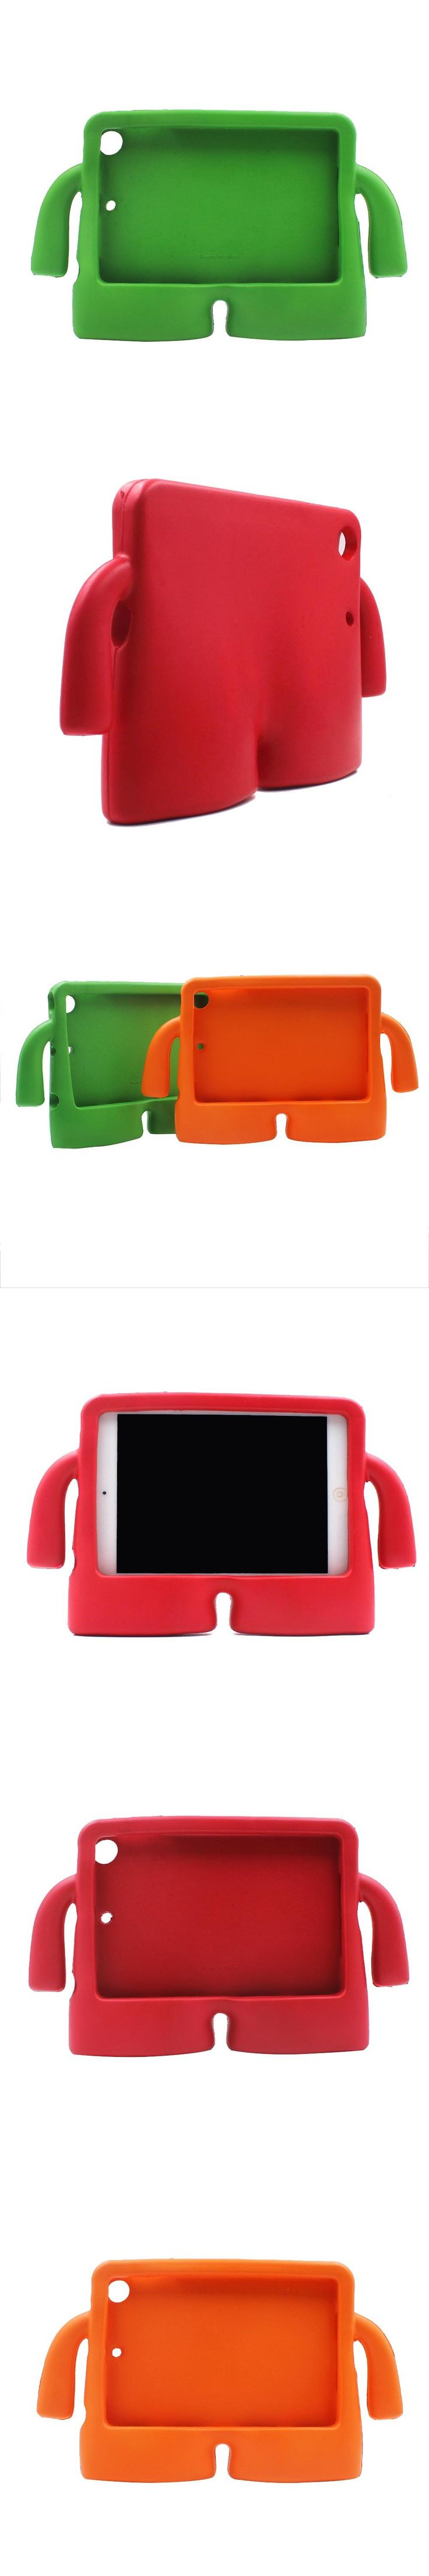 Silicone Case For Apple i-pad mini 1/2/3/4 Thick Foam Shock Proof Soft Stand Case 3D Cute Cartoon Kids Cover For Kids